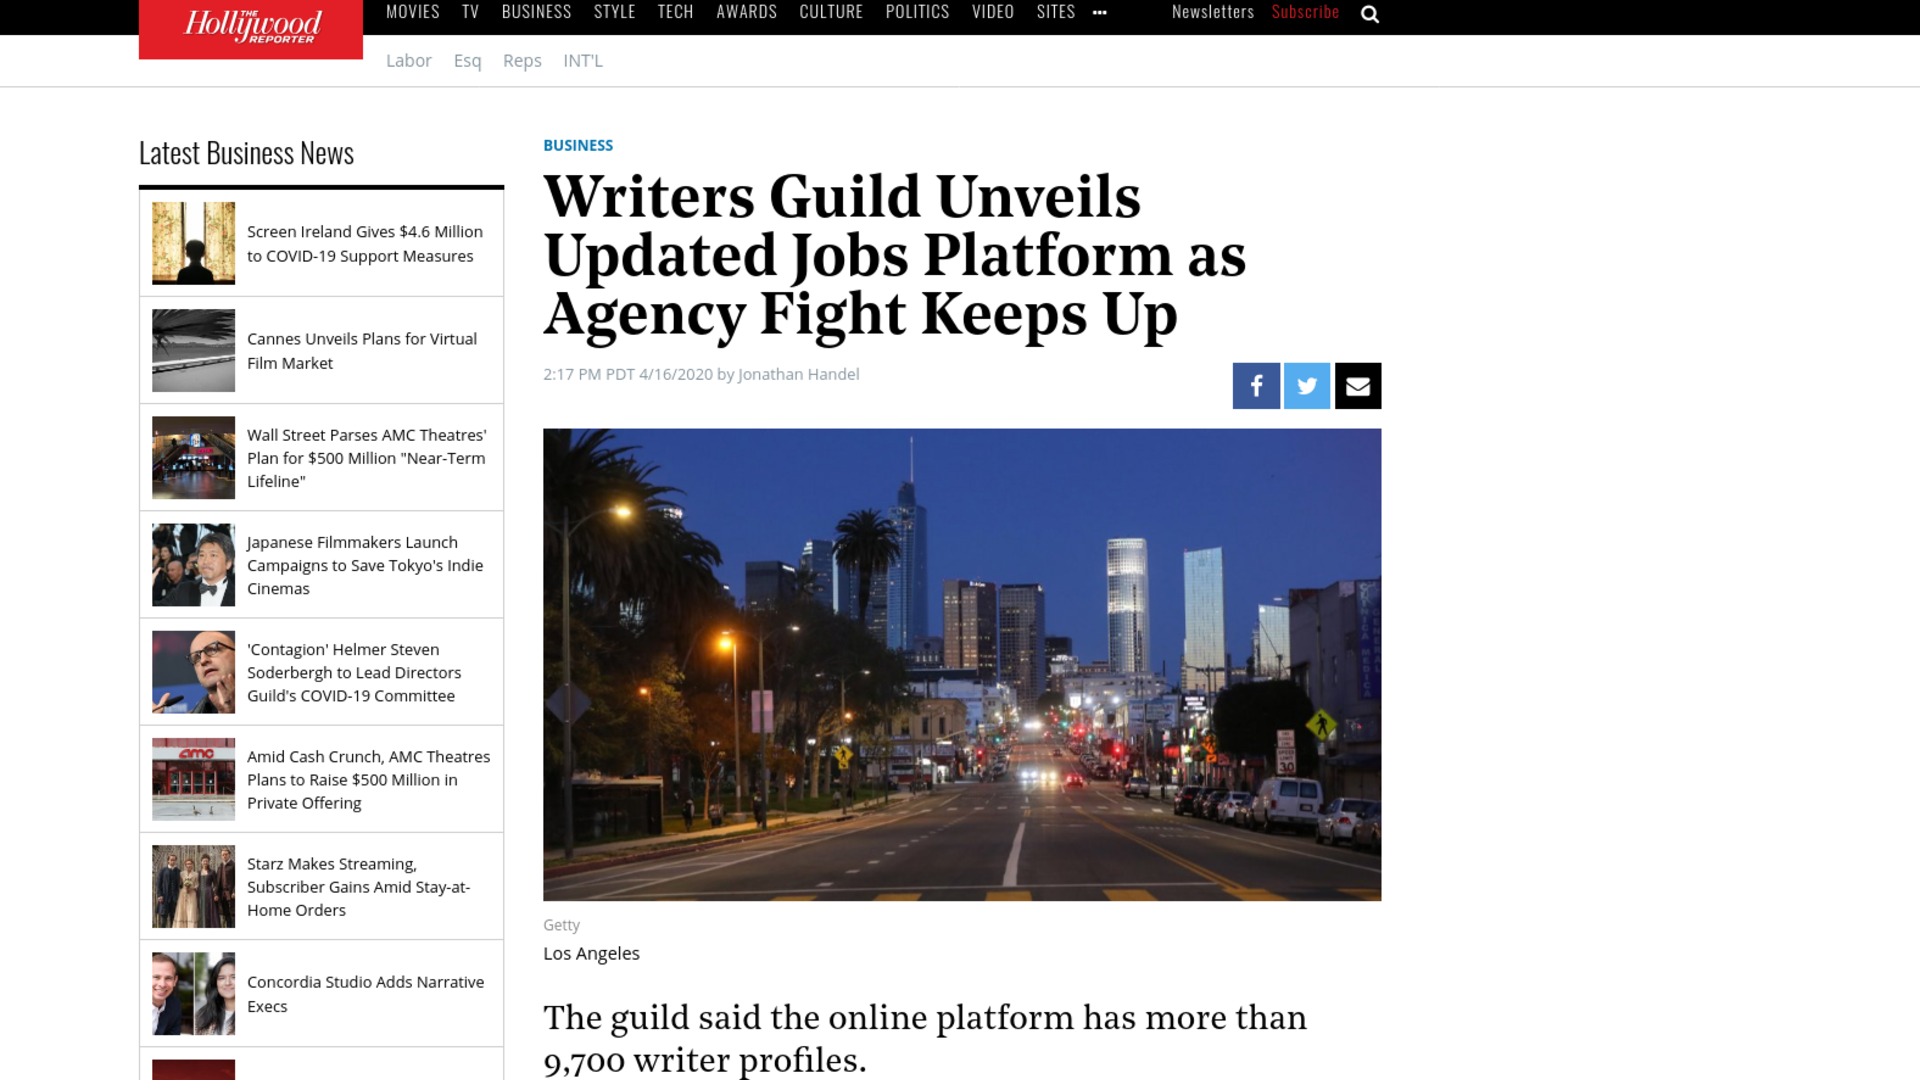 Fairness Rocks News Writers Guild Unveils Updated Jobs Platform as Agency Fight Keeps Up